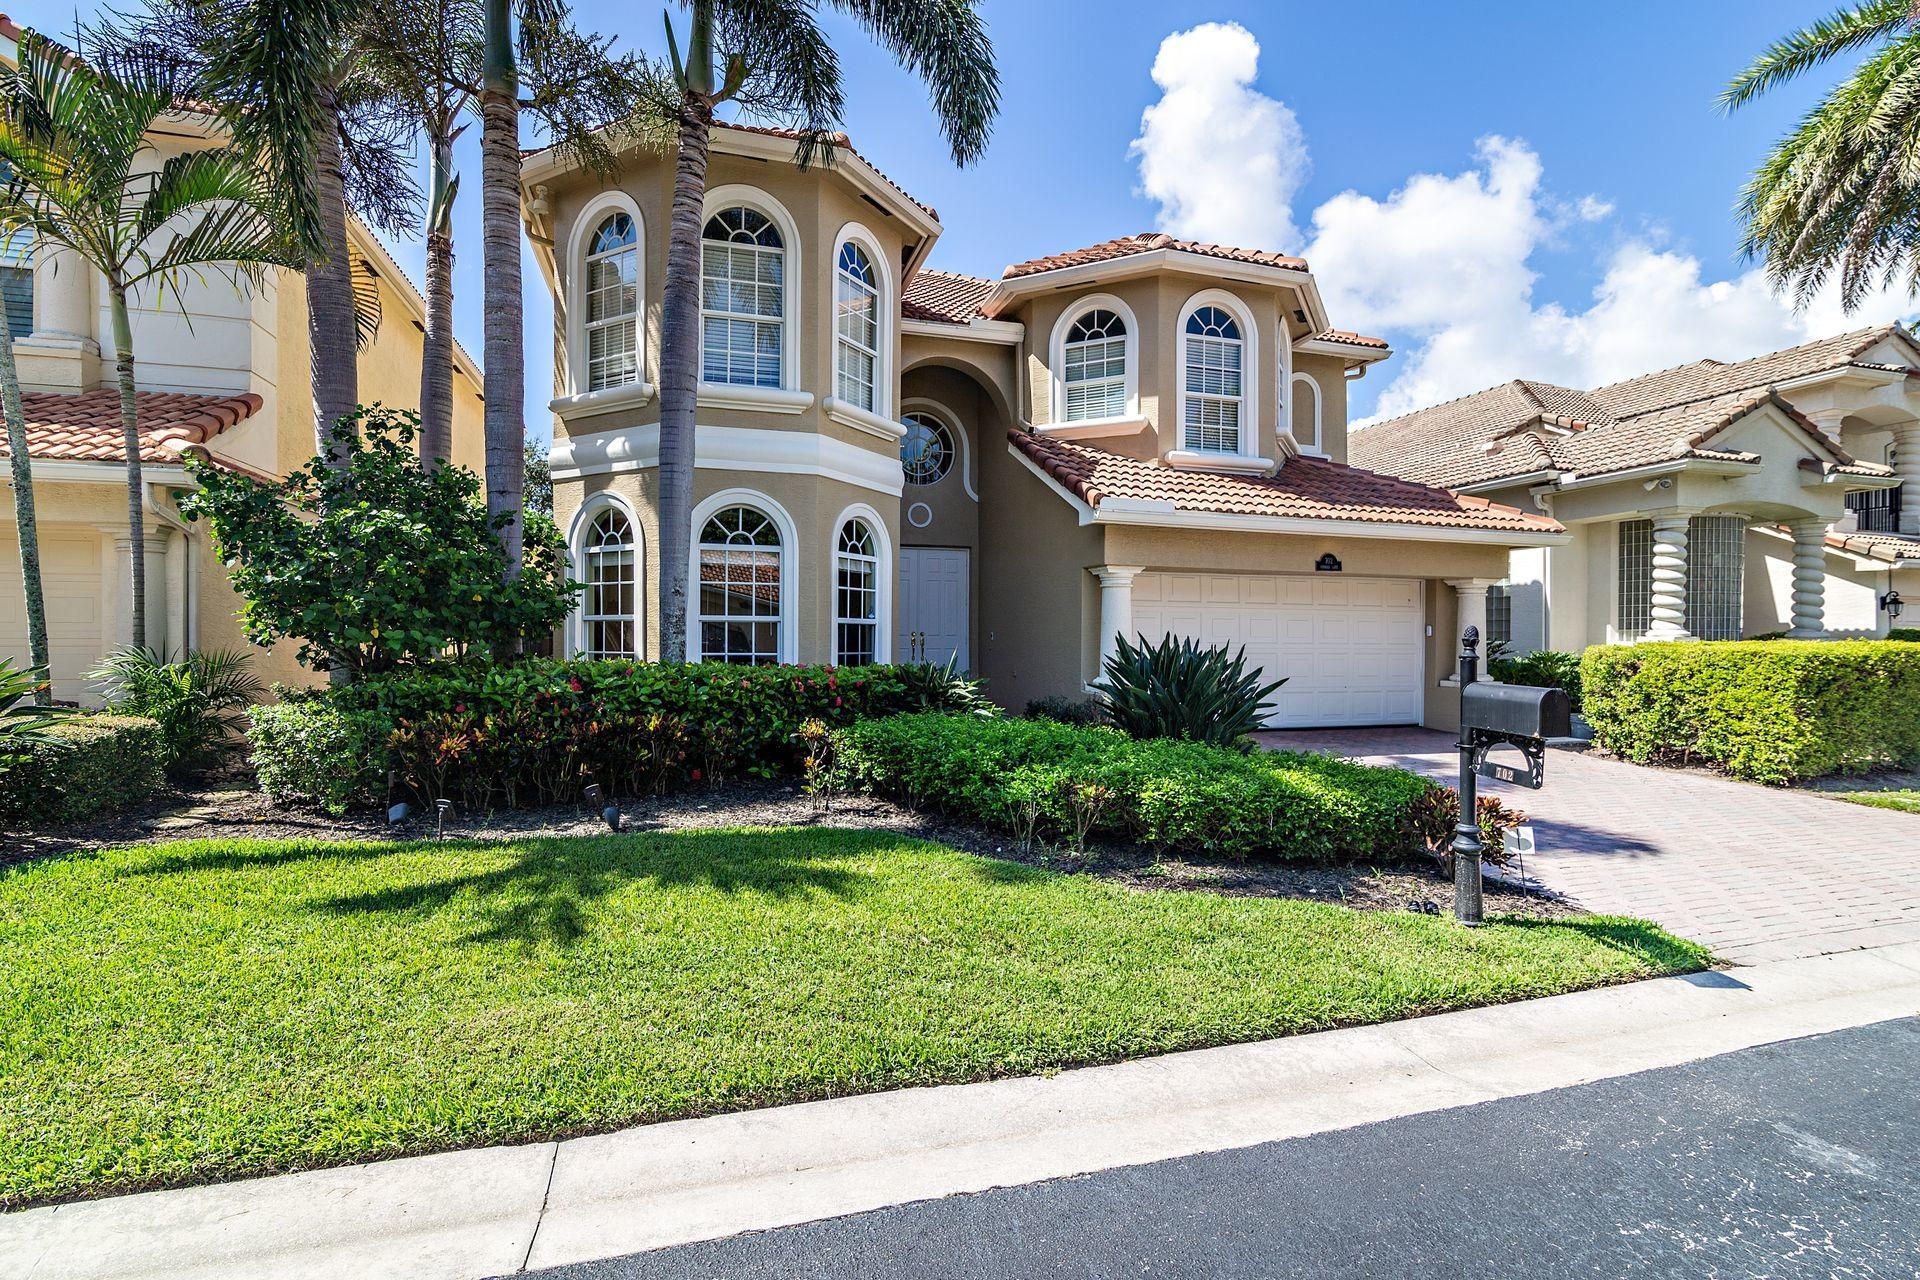 702 Voyager Lane, North Palm Beach, Florida 33410, 5 Bedrooms Bedrooms, ,4 BathroomsBathrooms,A,Single family,Voyager,RX-10464045